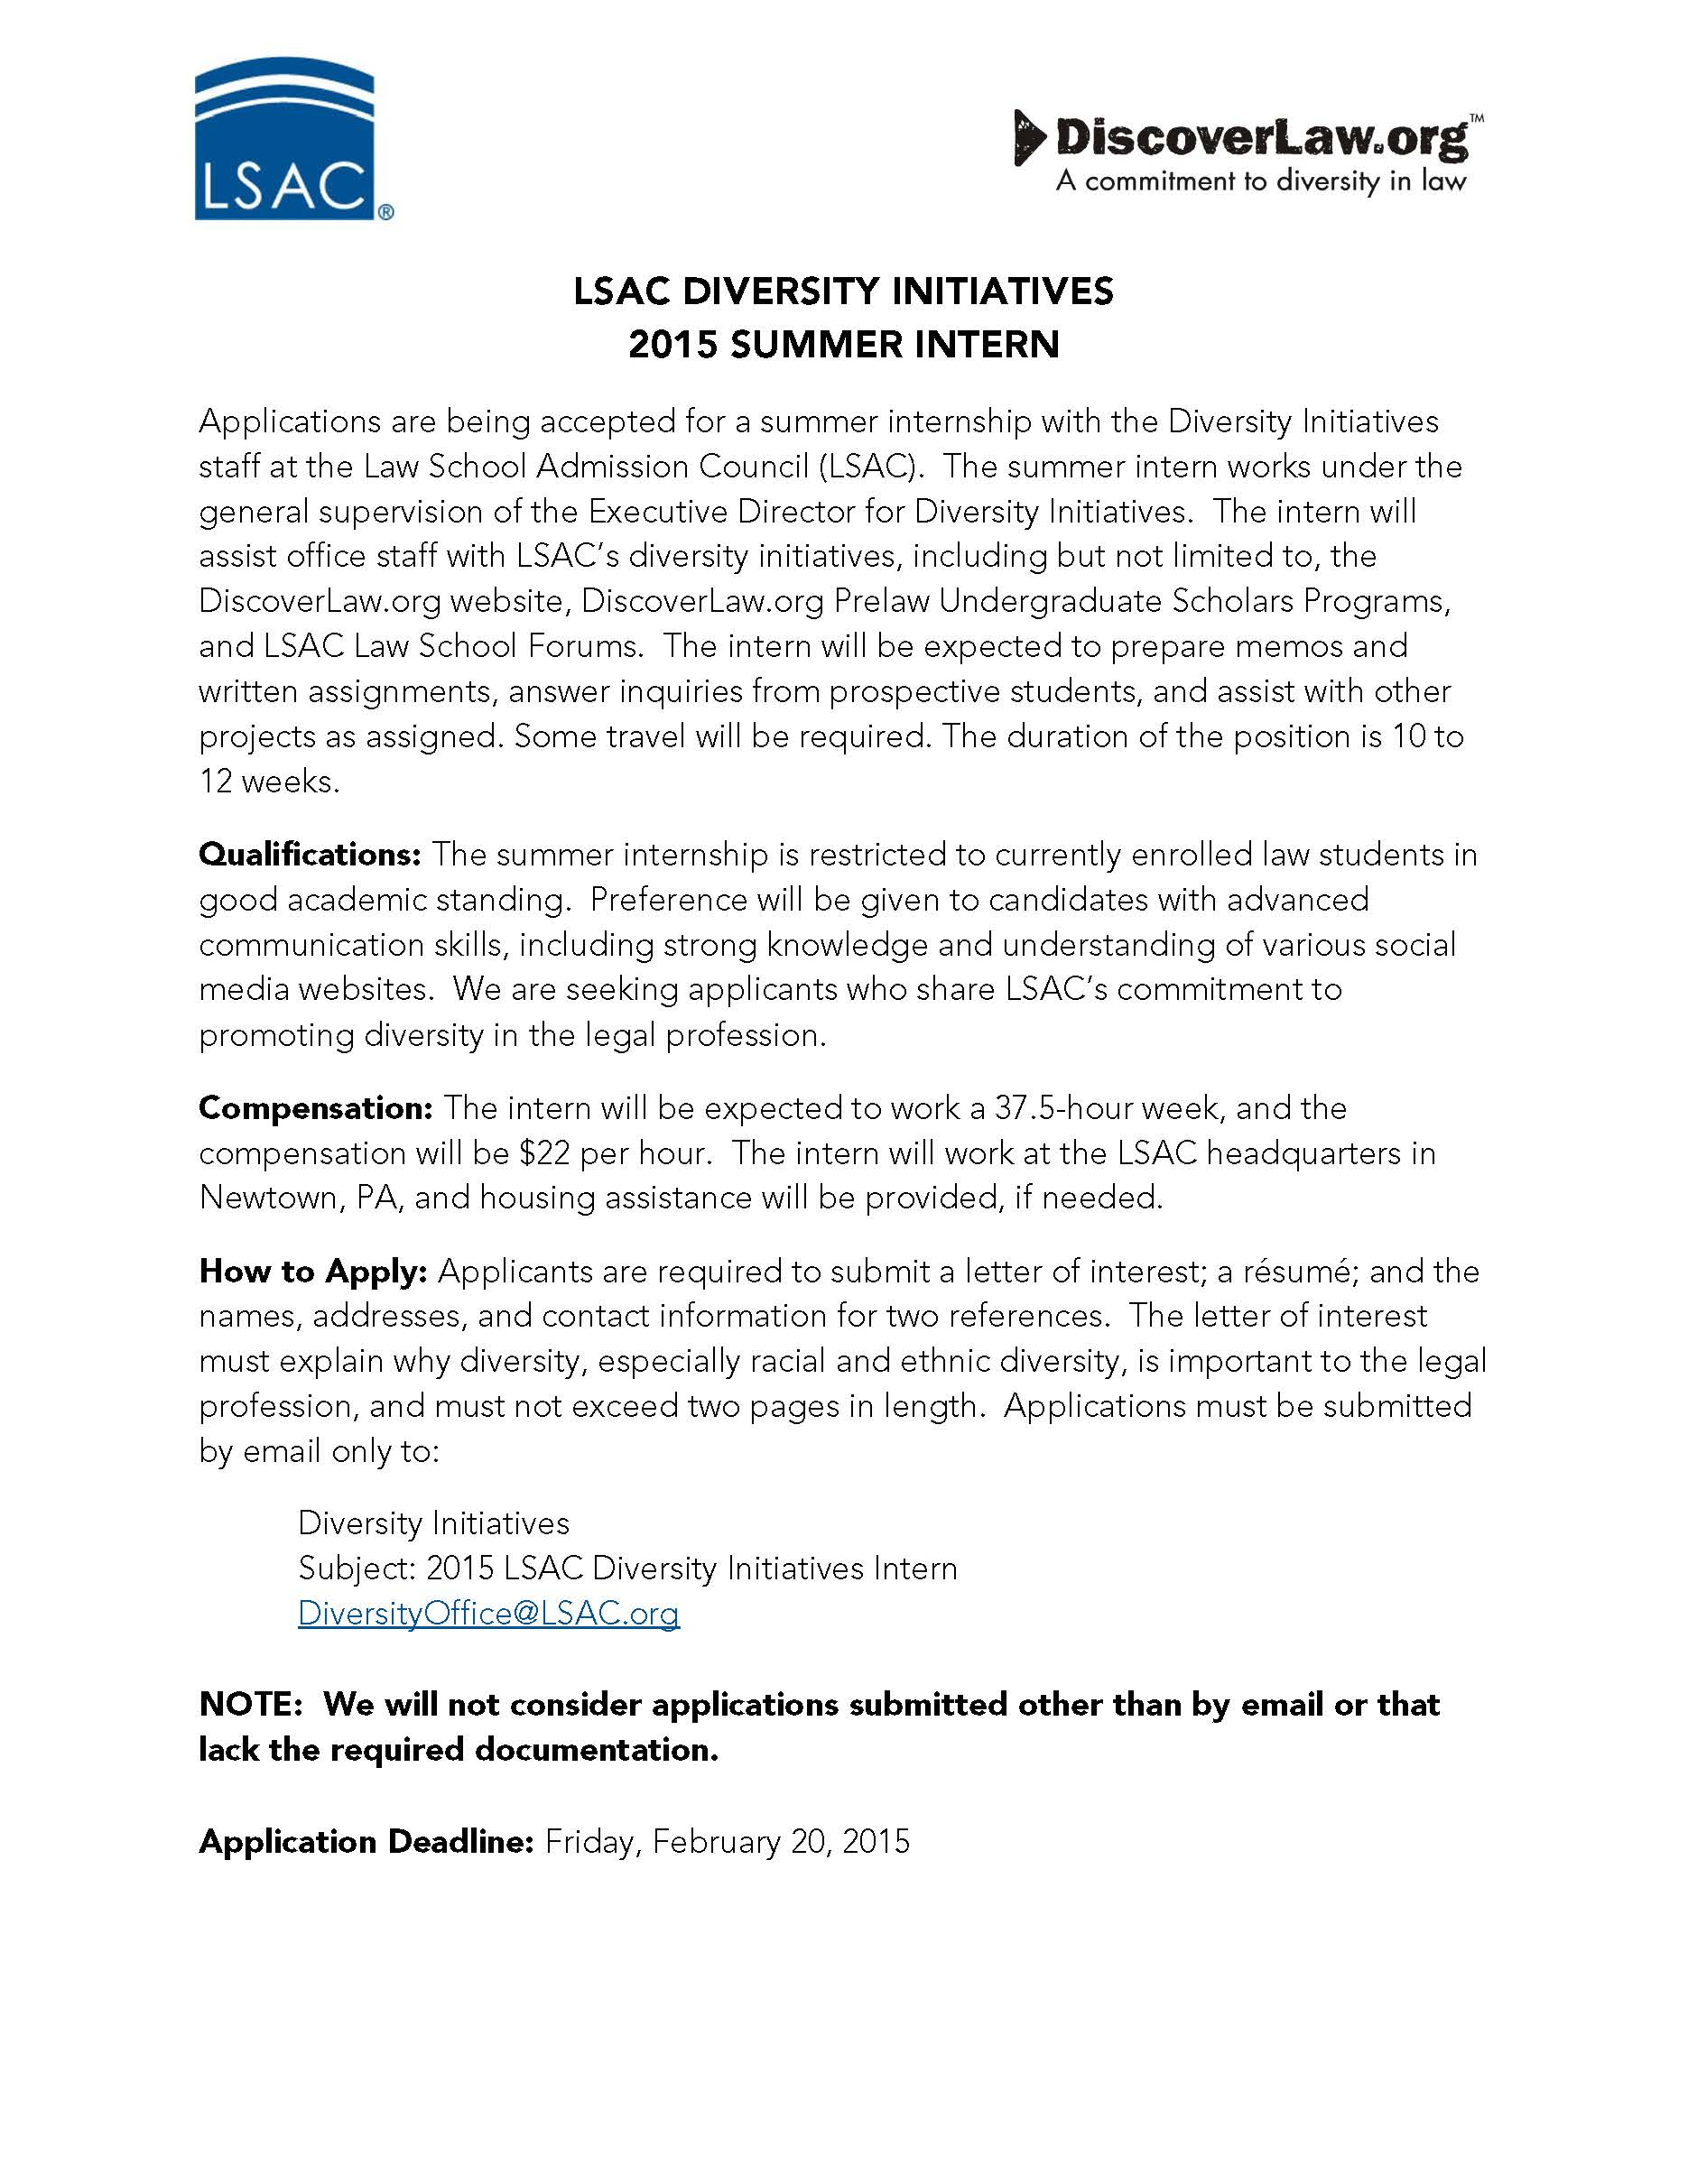 LSAC Diversity Initiatives Internship